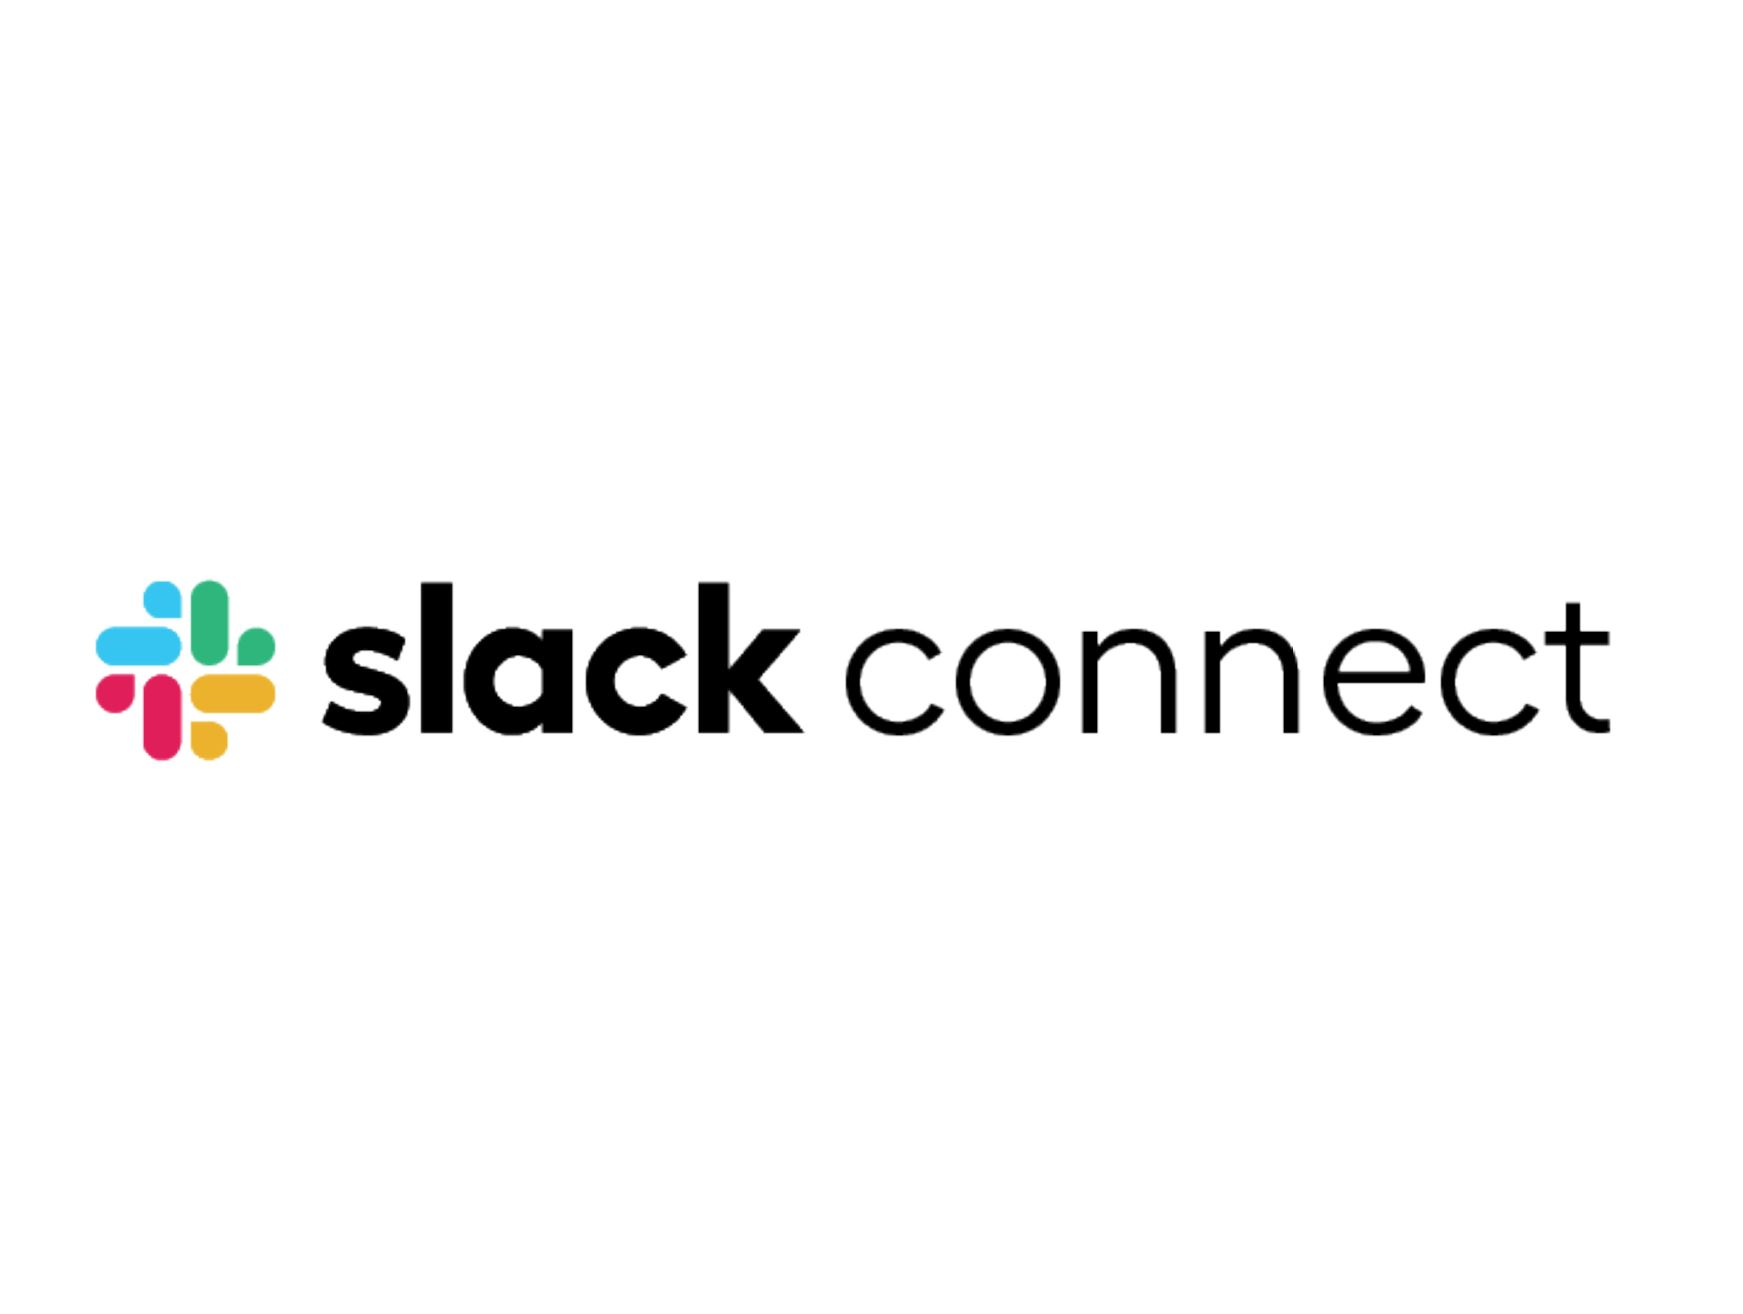 Slack Connect could replace business emails